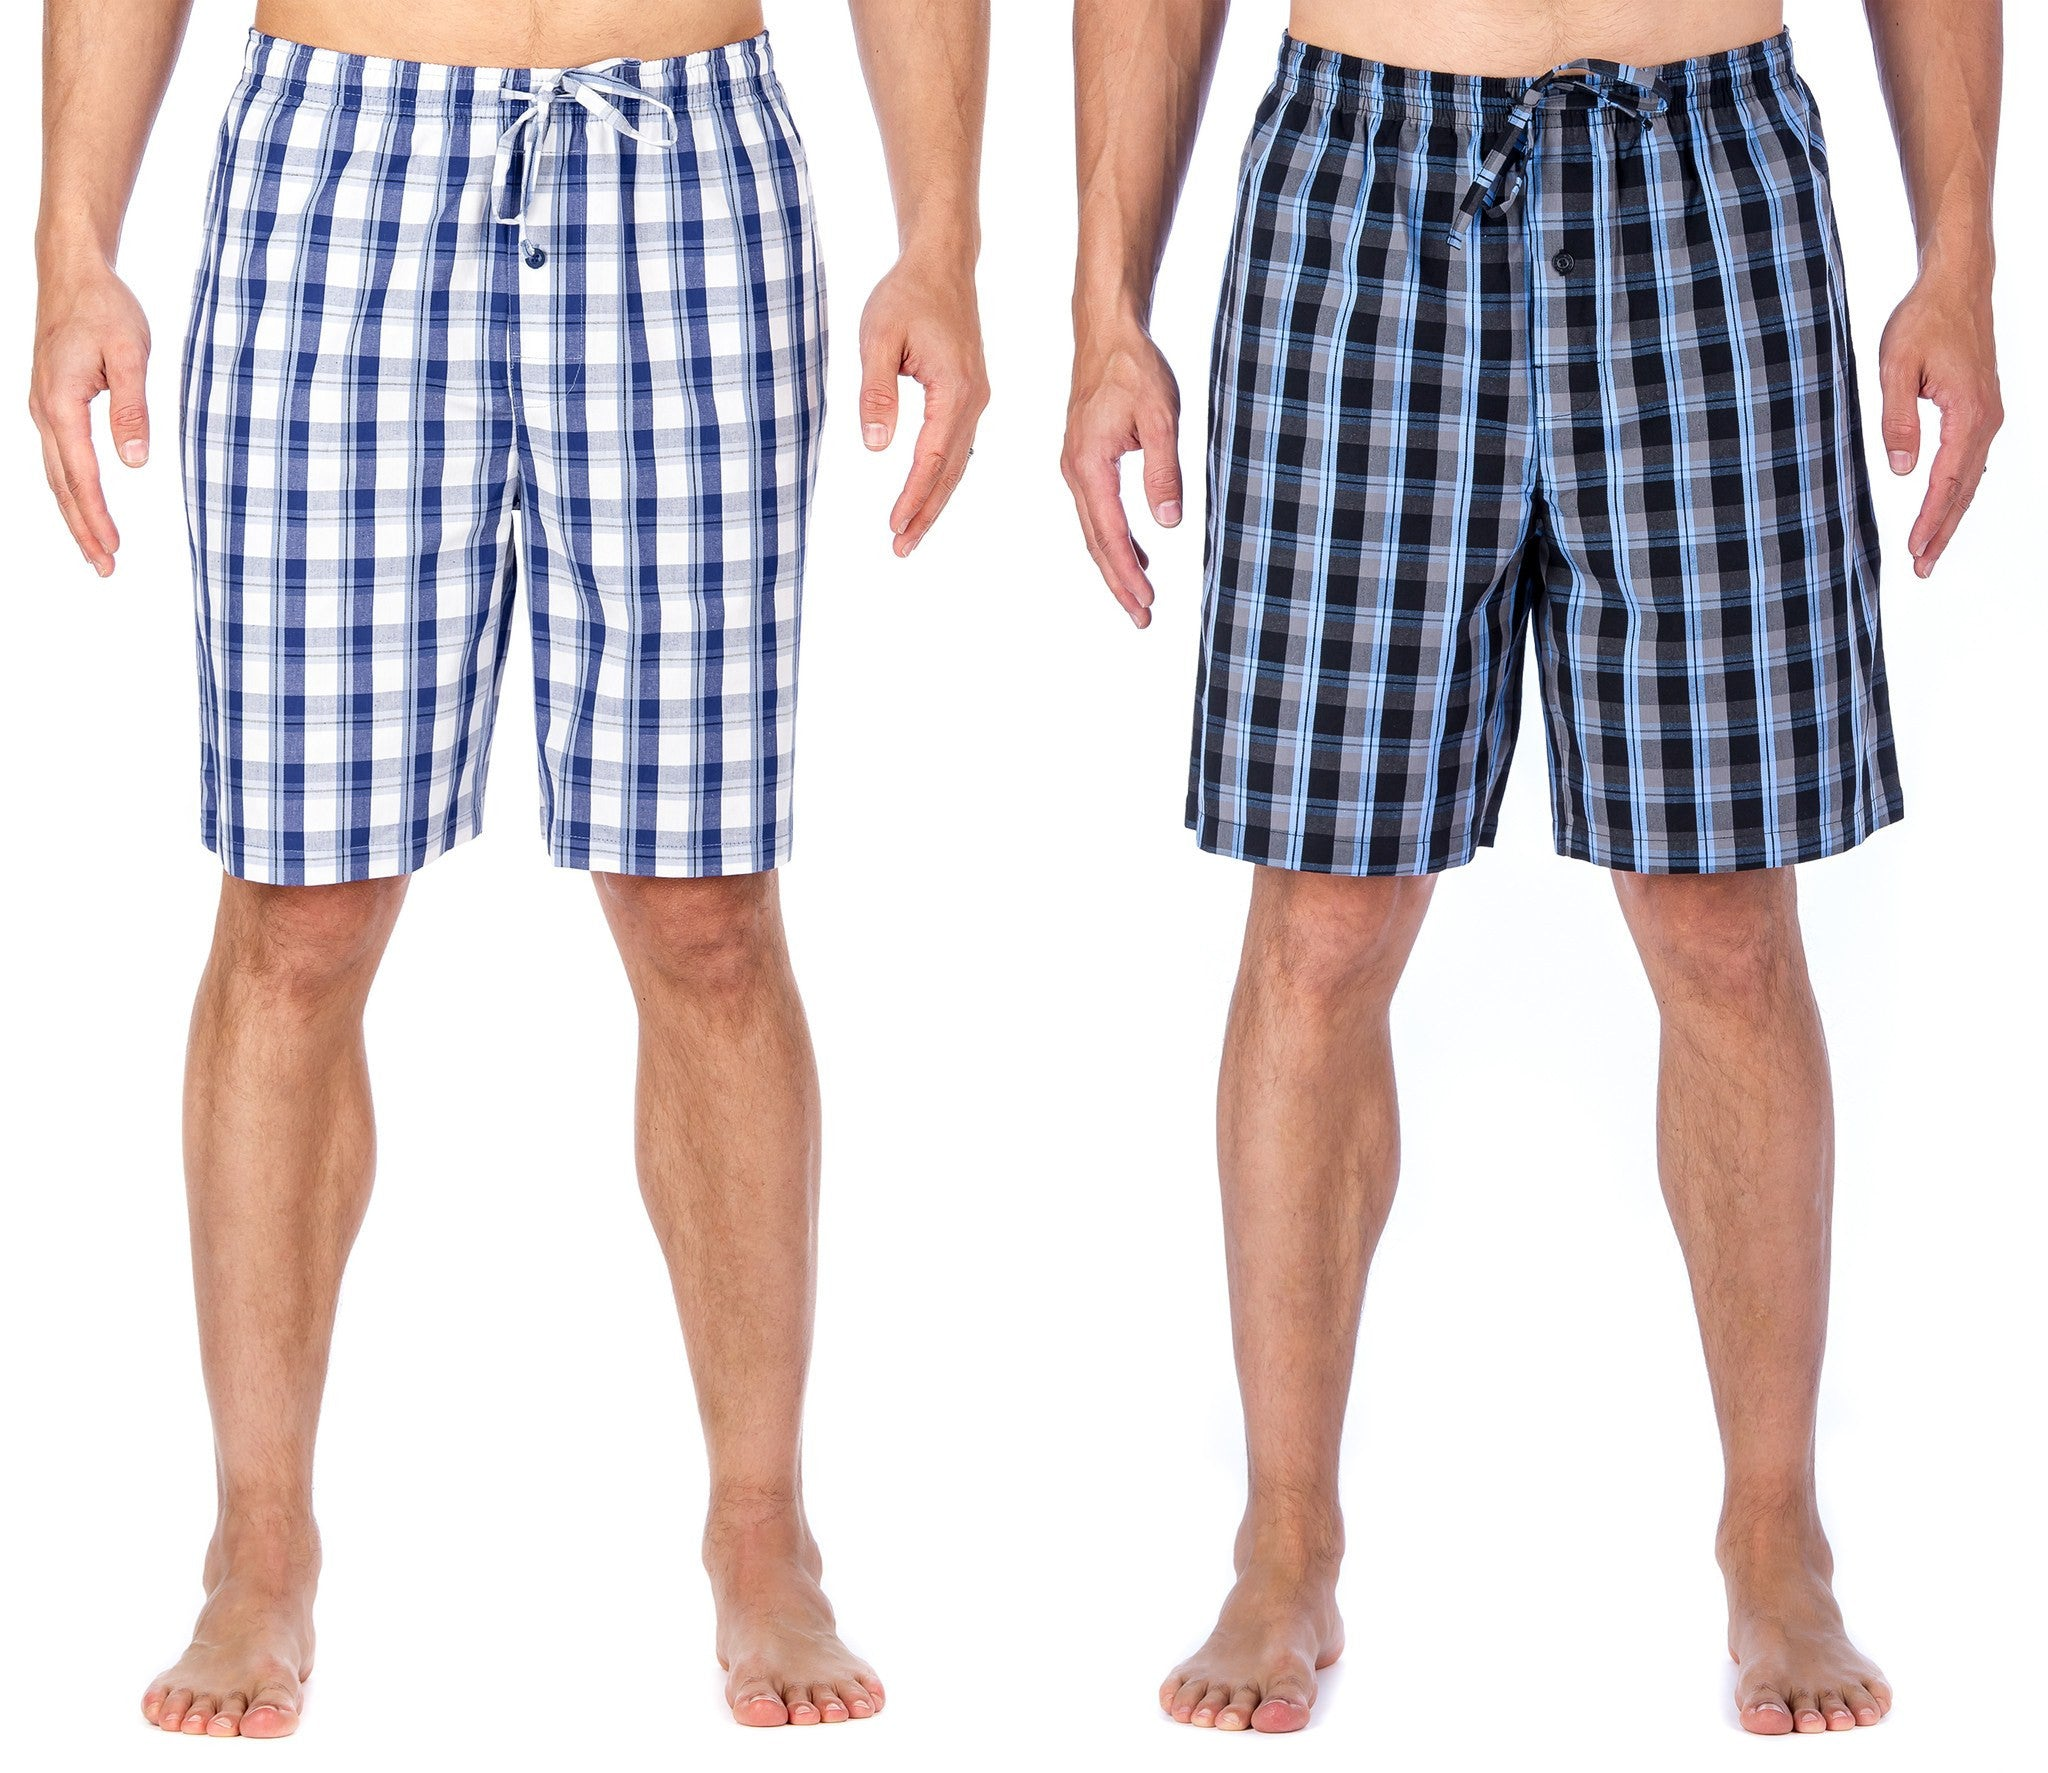 Men's Premium Cotton Sleep Shorts (2-Pack)